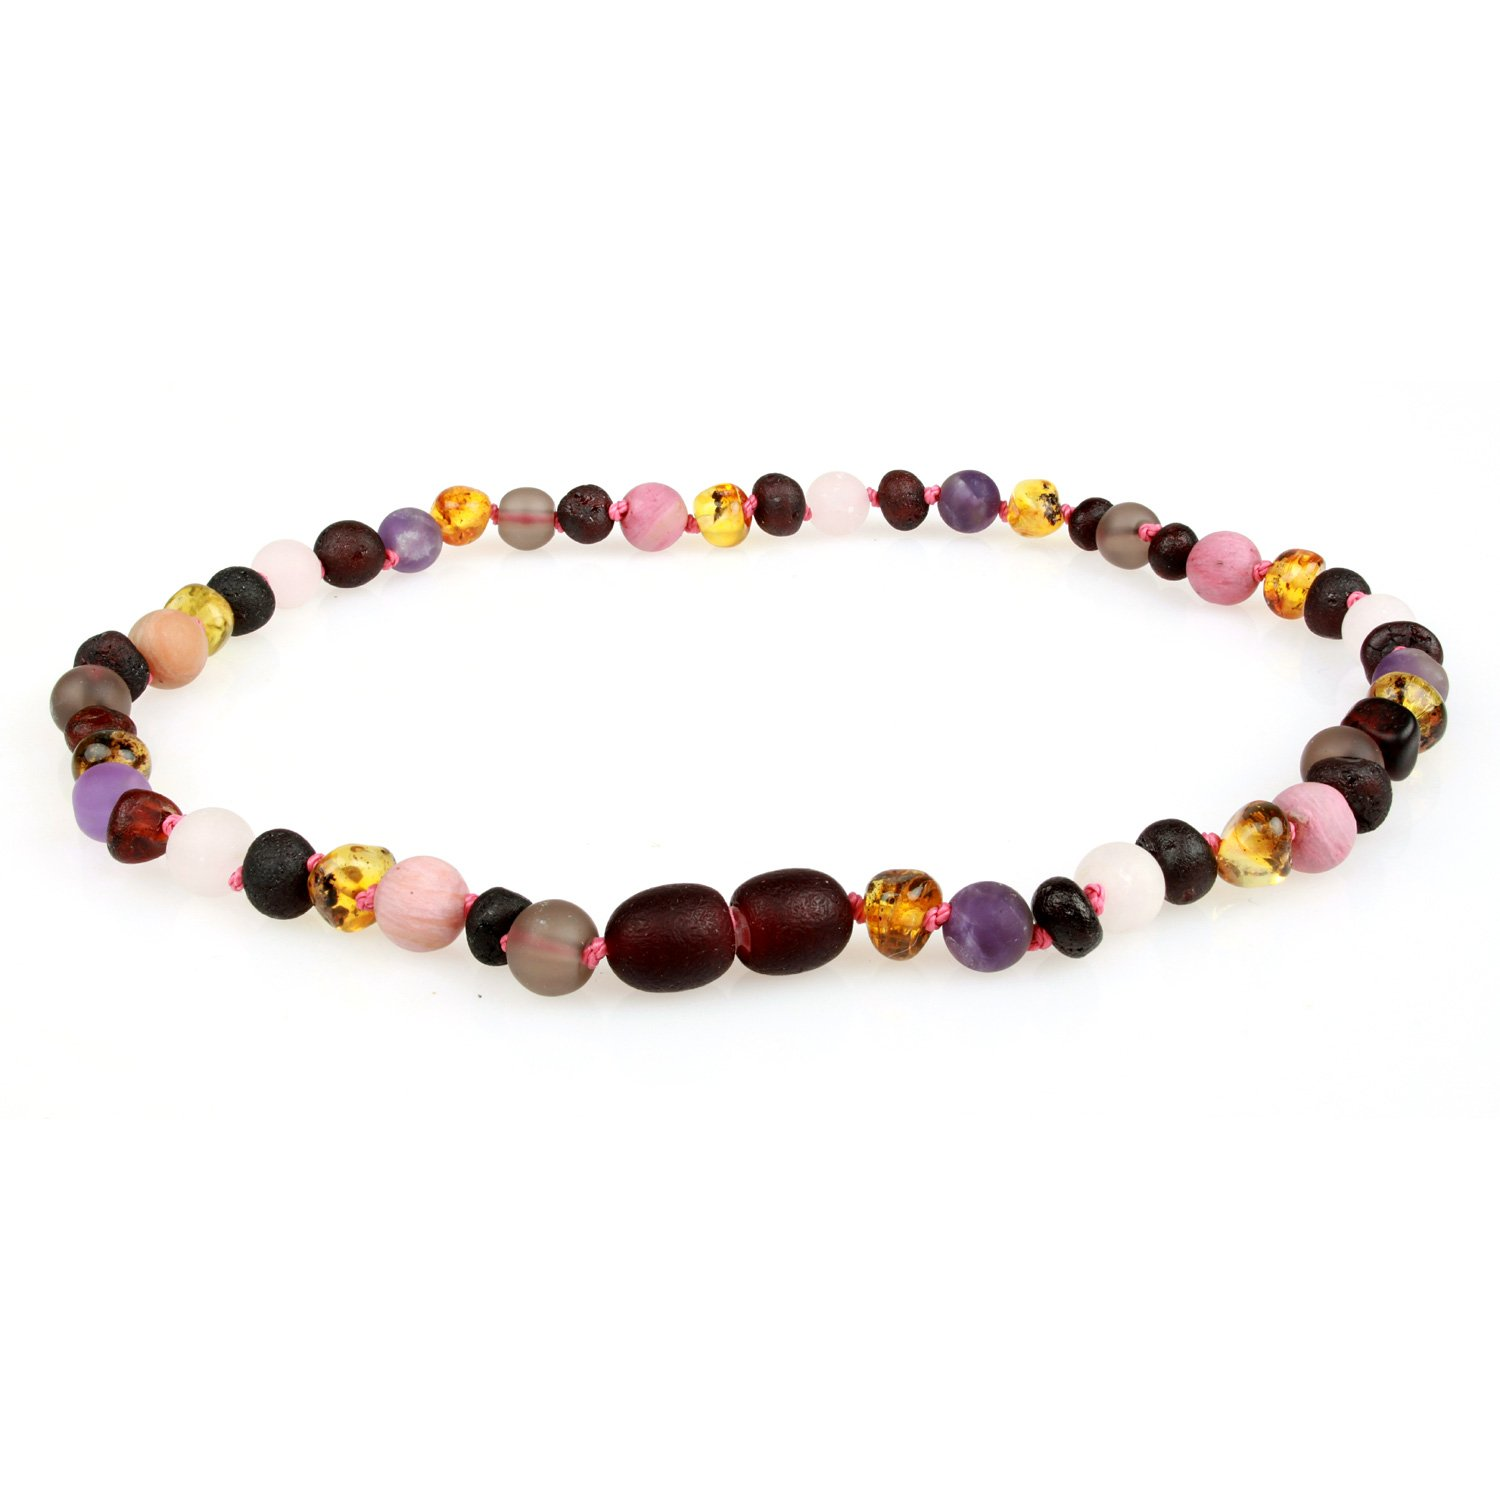 Baltic Amber Teething Necklace (Unisex, 12.5 Inches) with Semi-Precious Gemstones - Matte Smoky Quartz, Rhodonite, Matte Rose Quartz, Matte Amethyst. Lab-Tested, 100% Certified - Teething Pain Relief by Powell's Owls (Image #1)